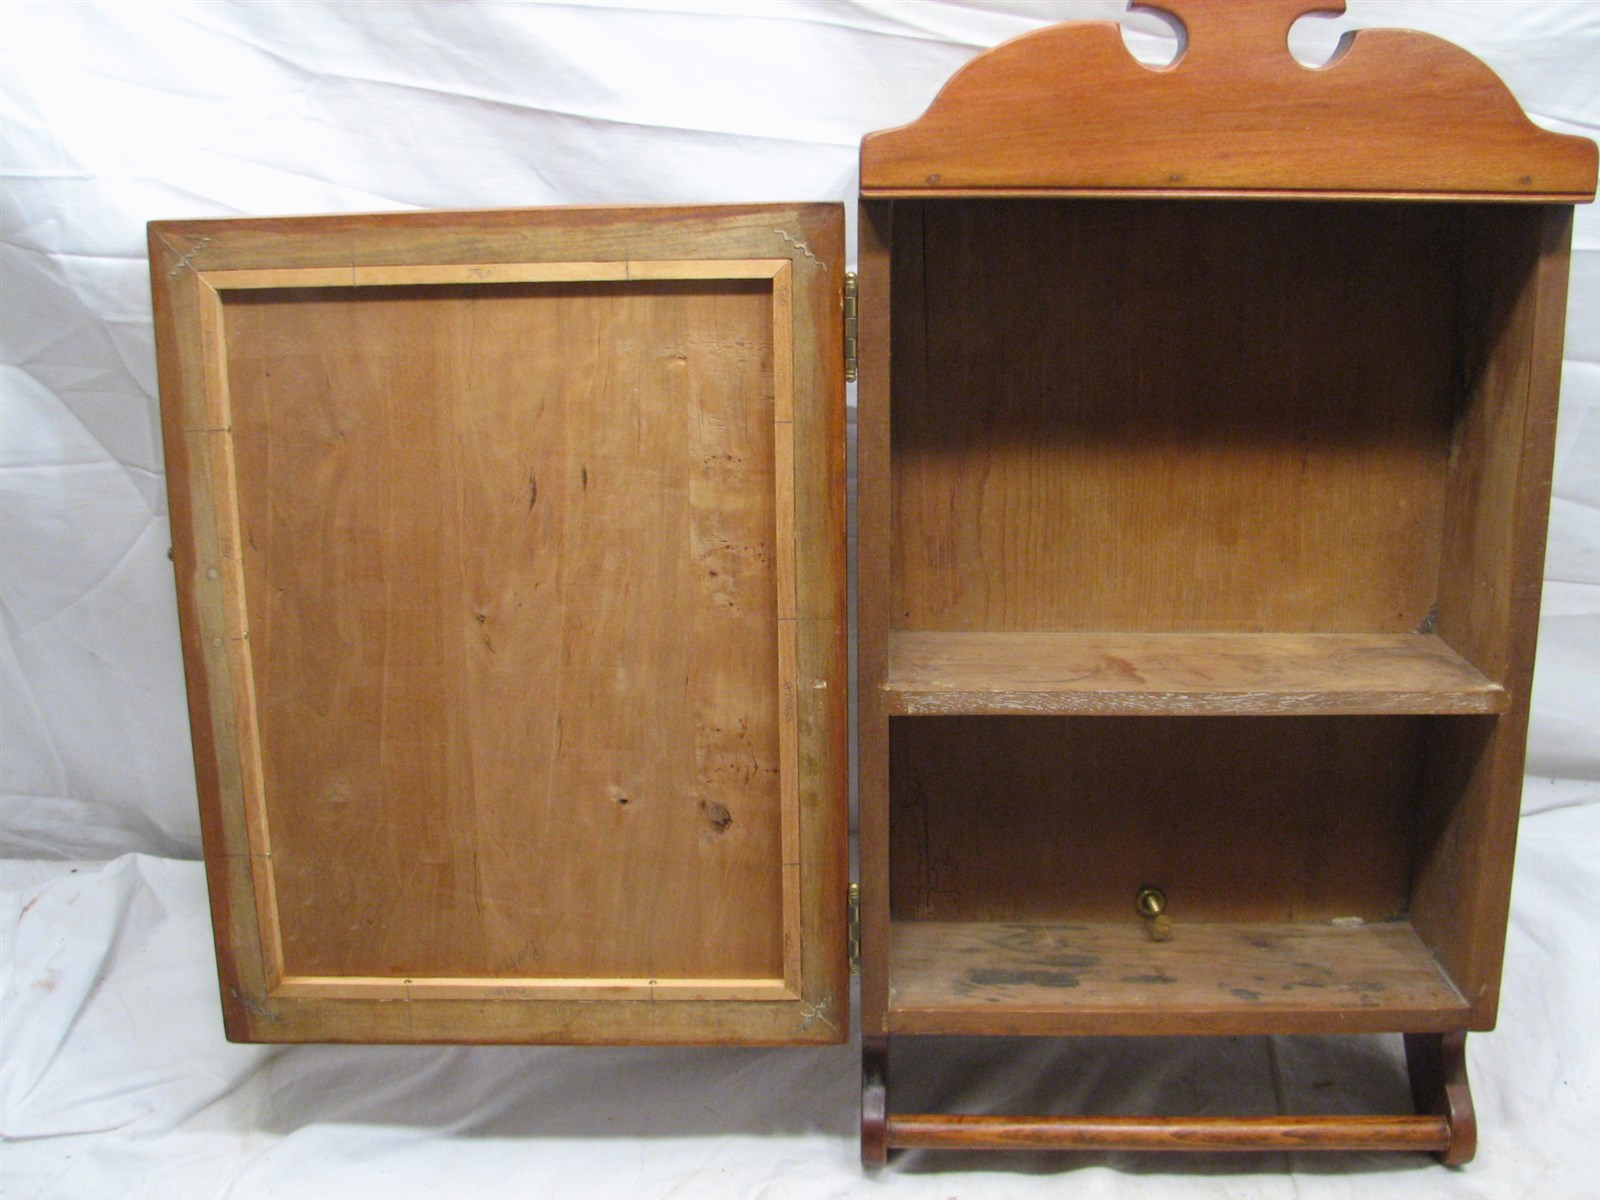 Antique wooden bathroom medicine wall kitchen spice cabinet apothecary ebay - Antique bathroom wall cabinets ...